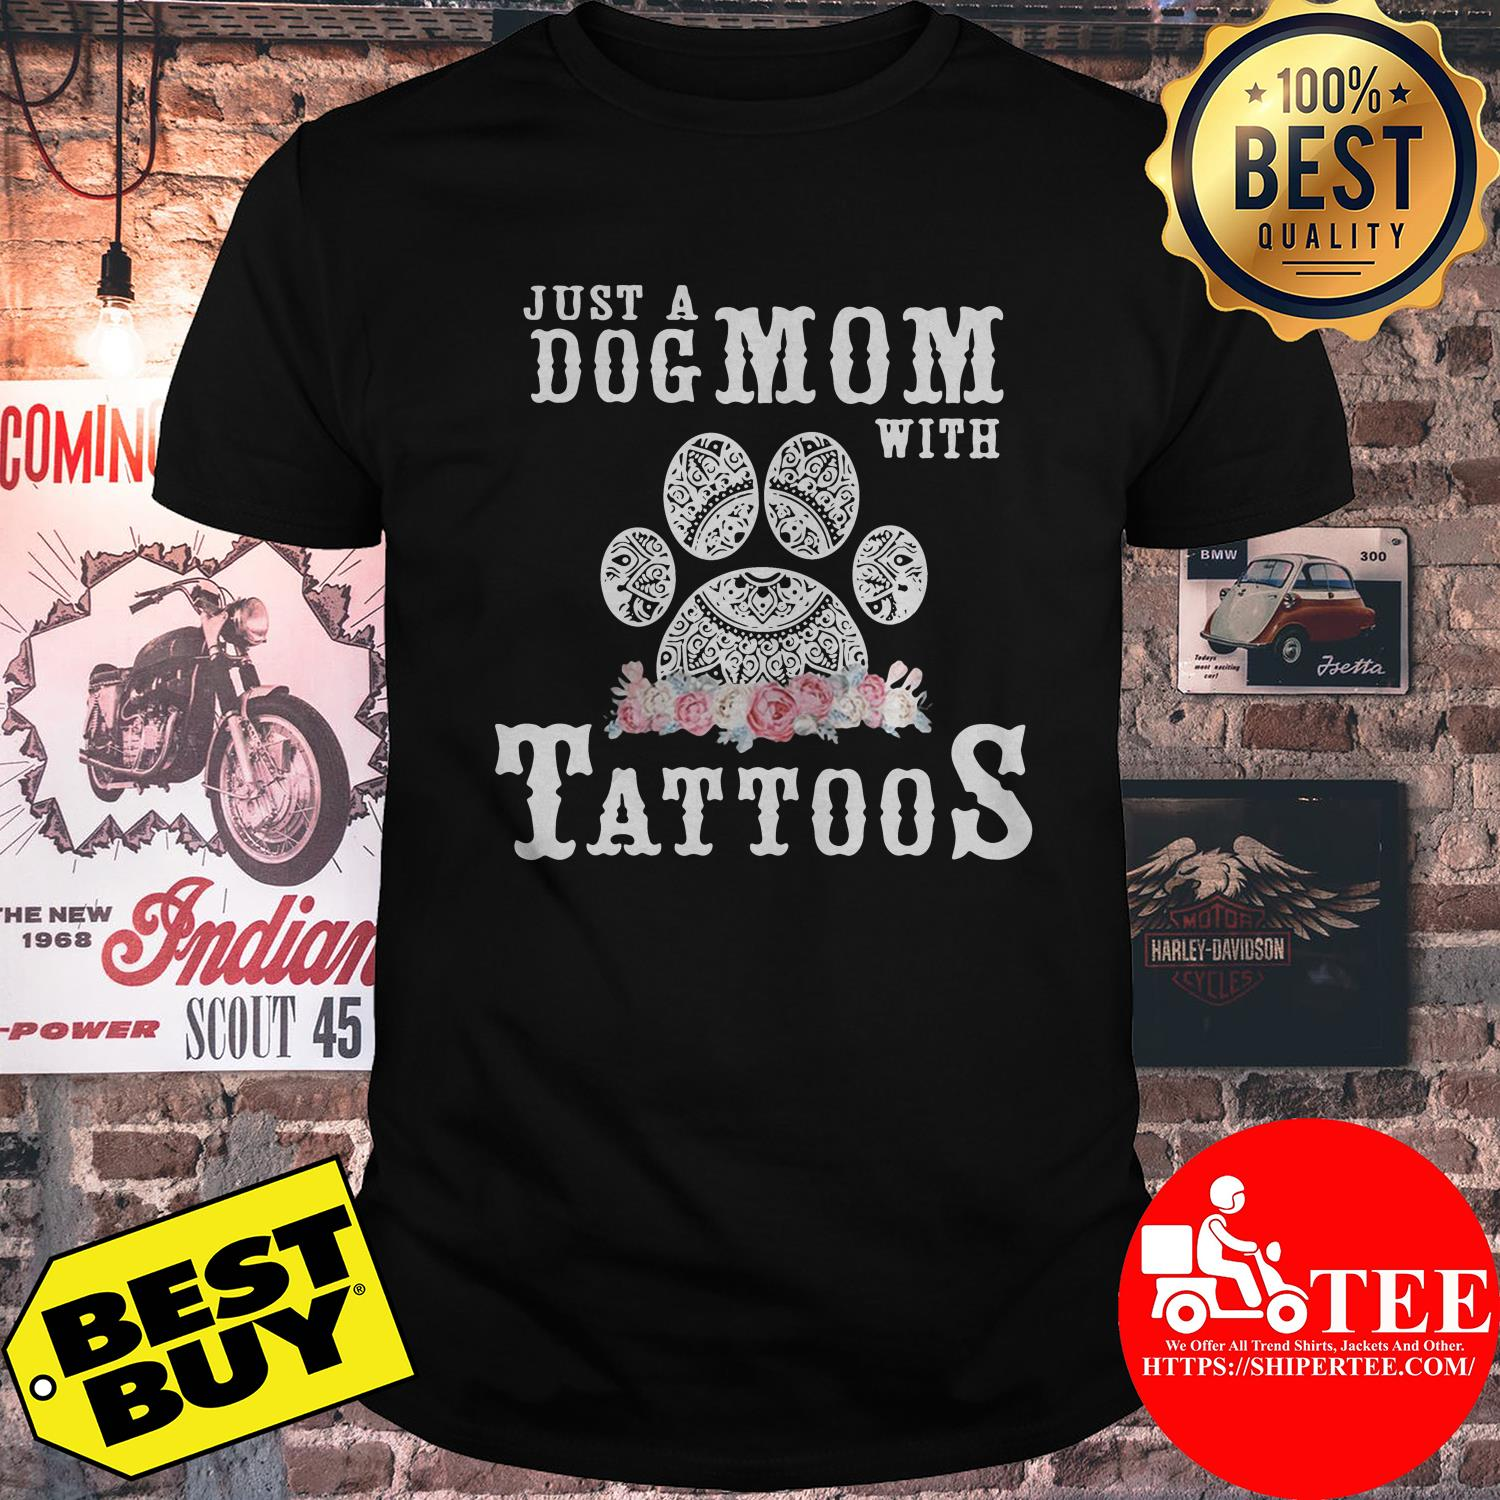 Just a dog mom with tattoos shirt